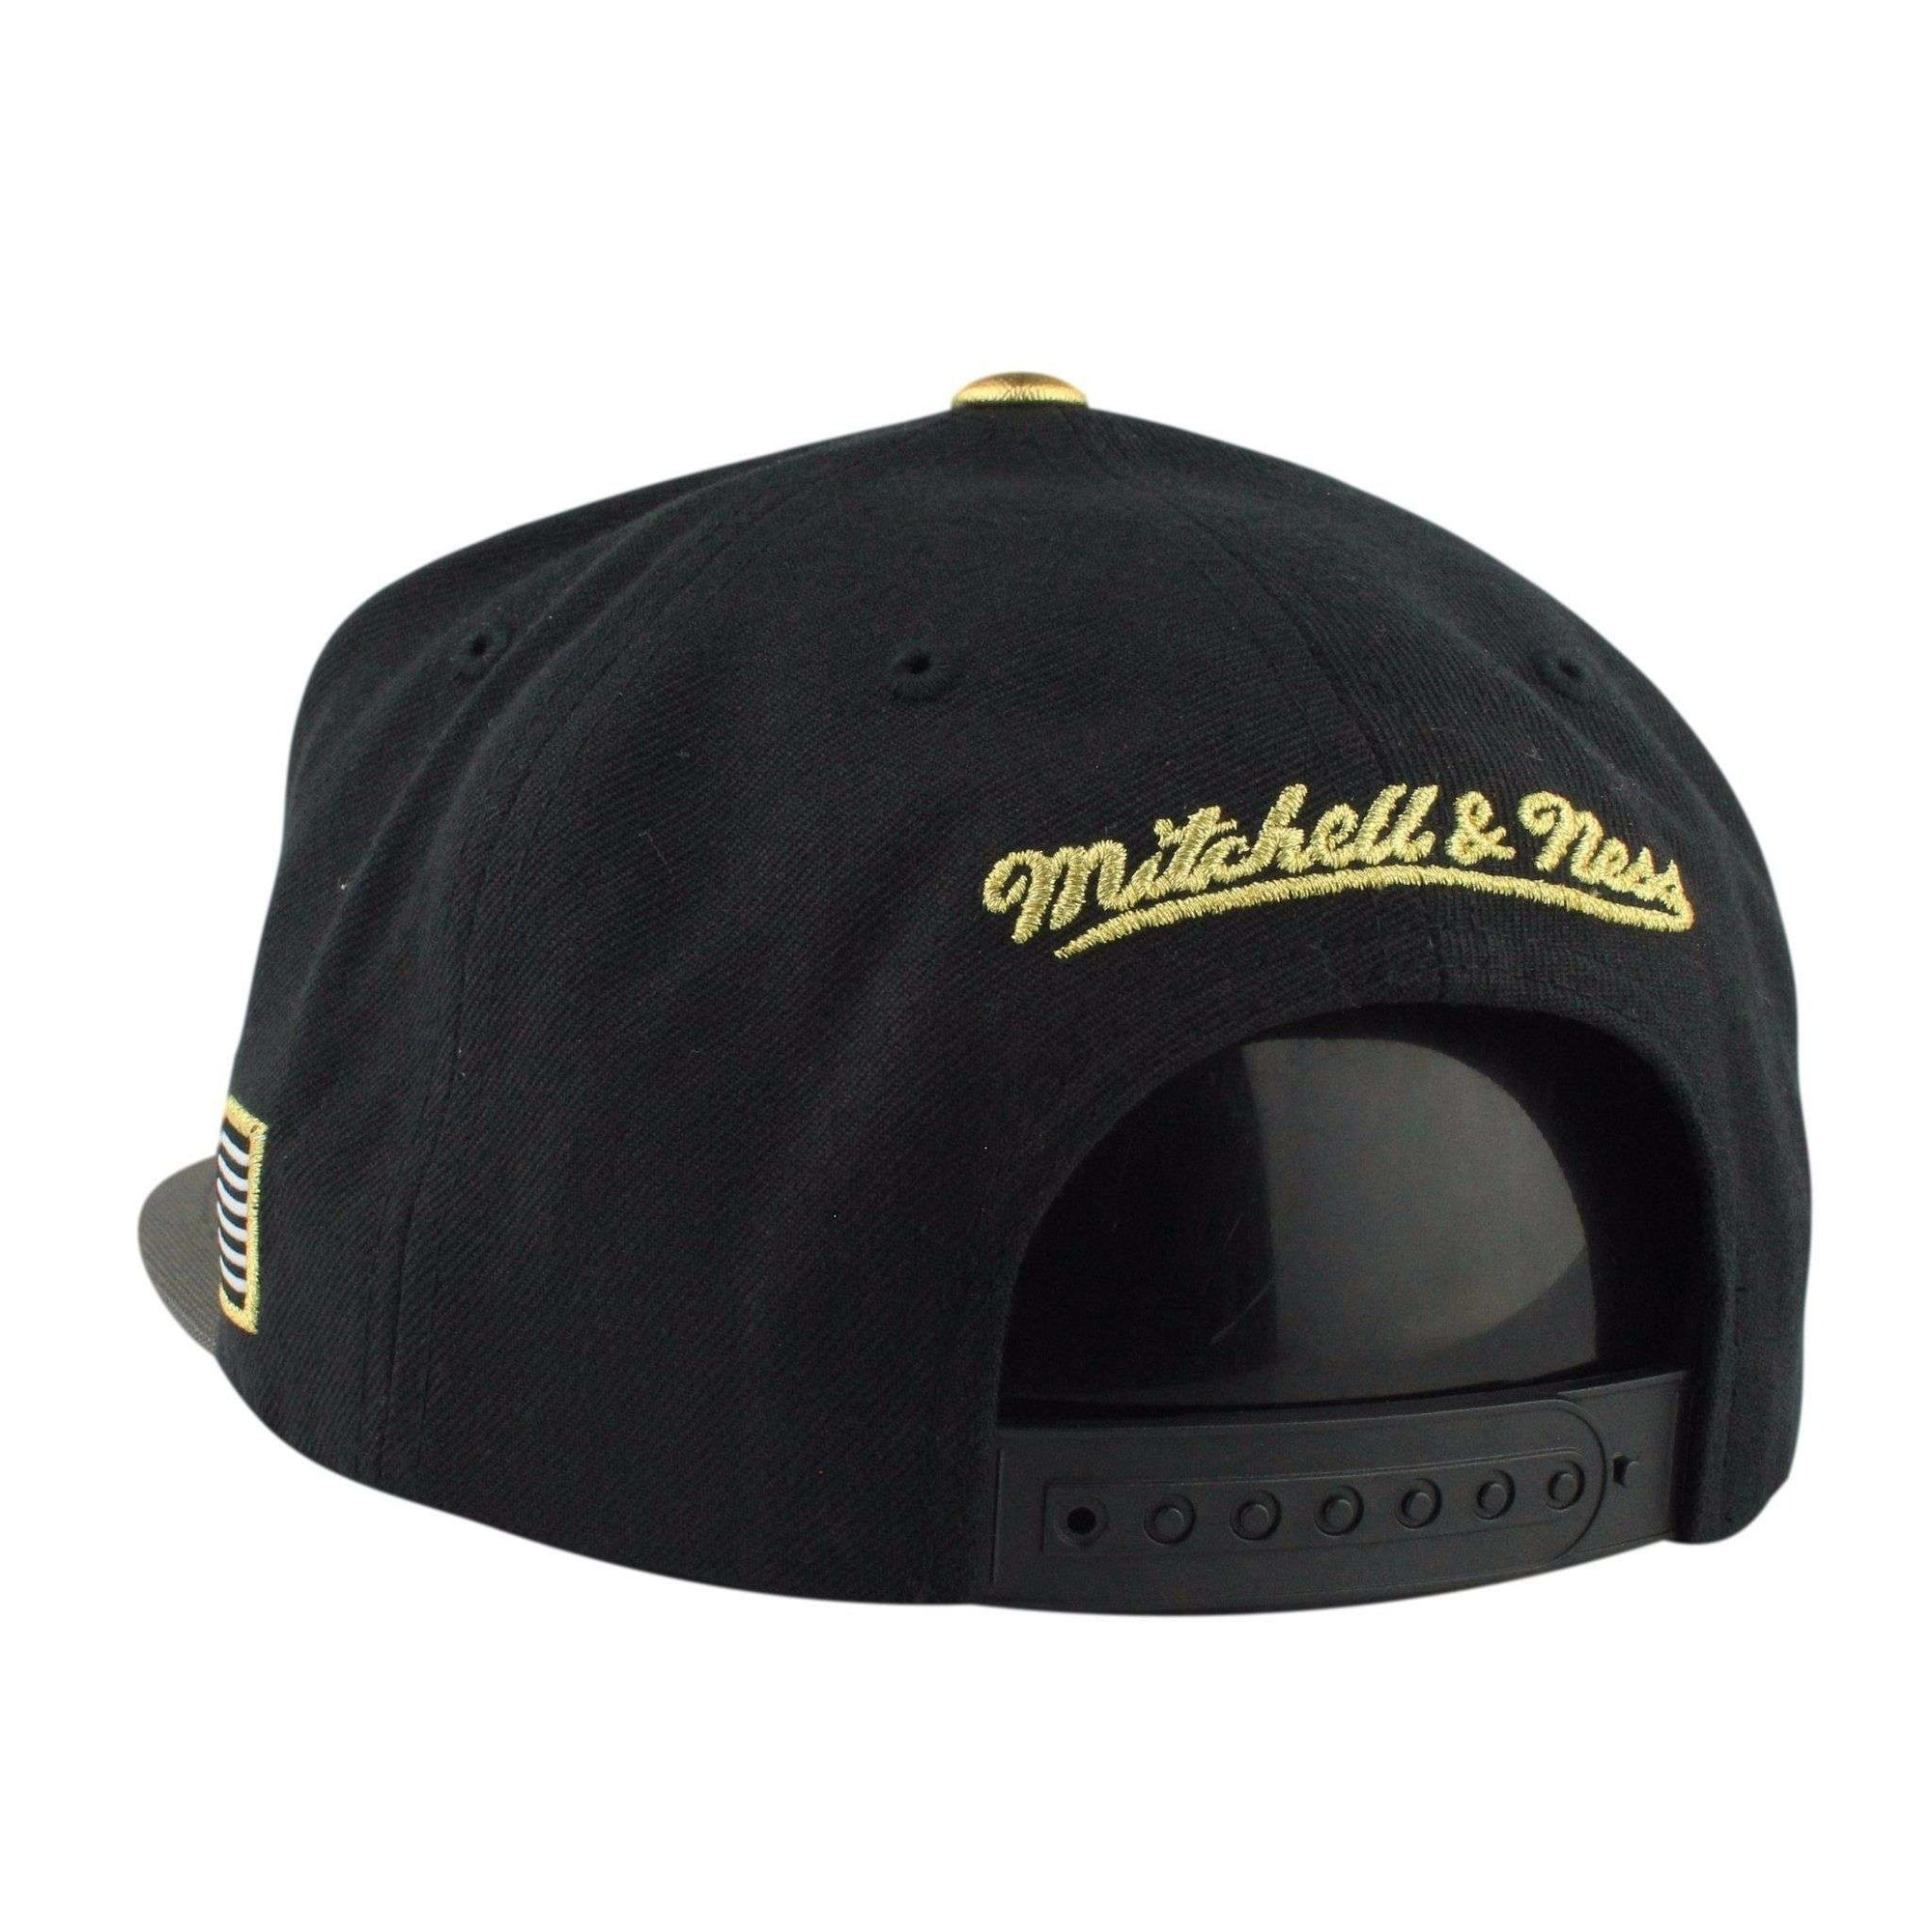 4fa8470ca7a ... free shipping mitchell and ness chicago bulls gold tip black gray  snapback 3465f 34be7